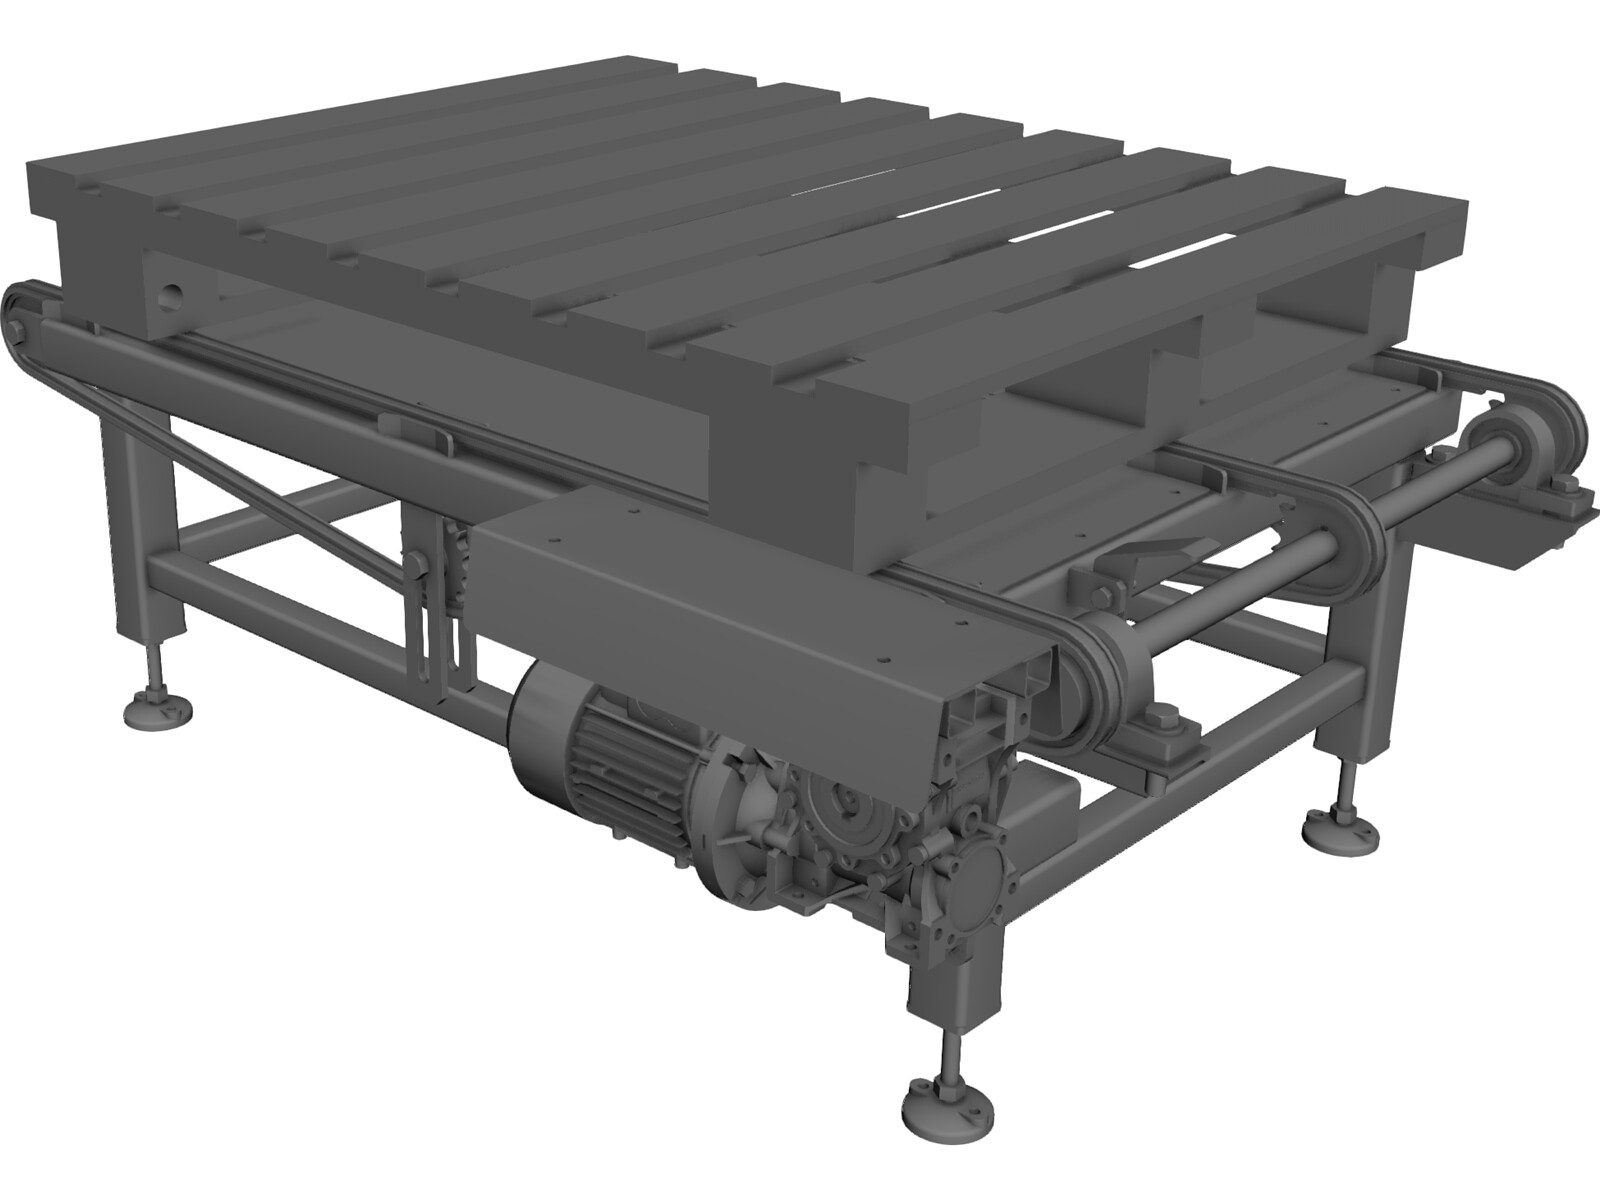 Pallet Dispenser 3d Cad Model Download 3d Cad Browser